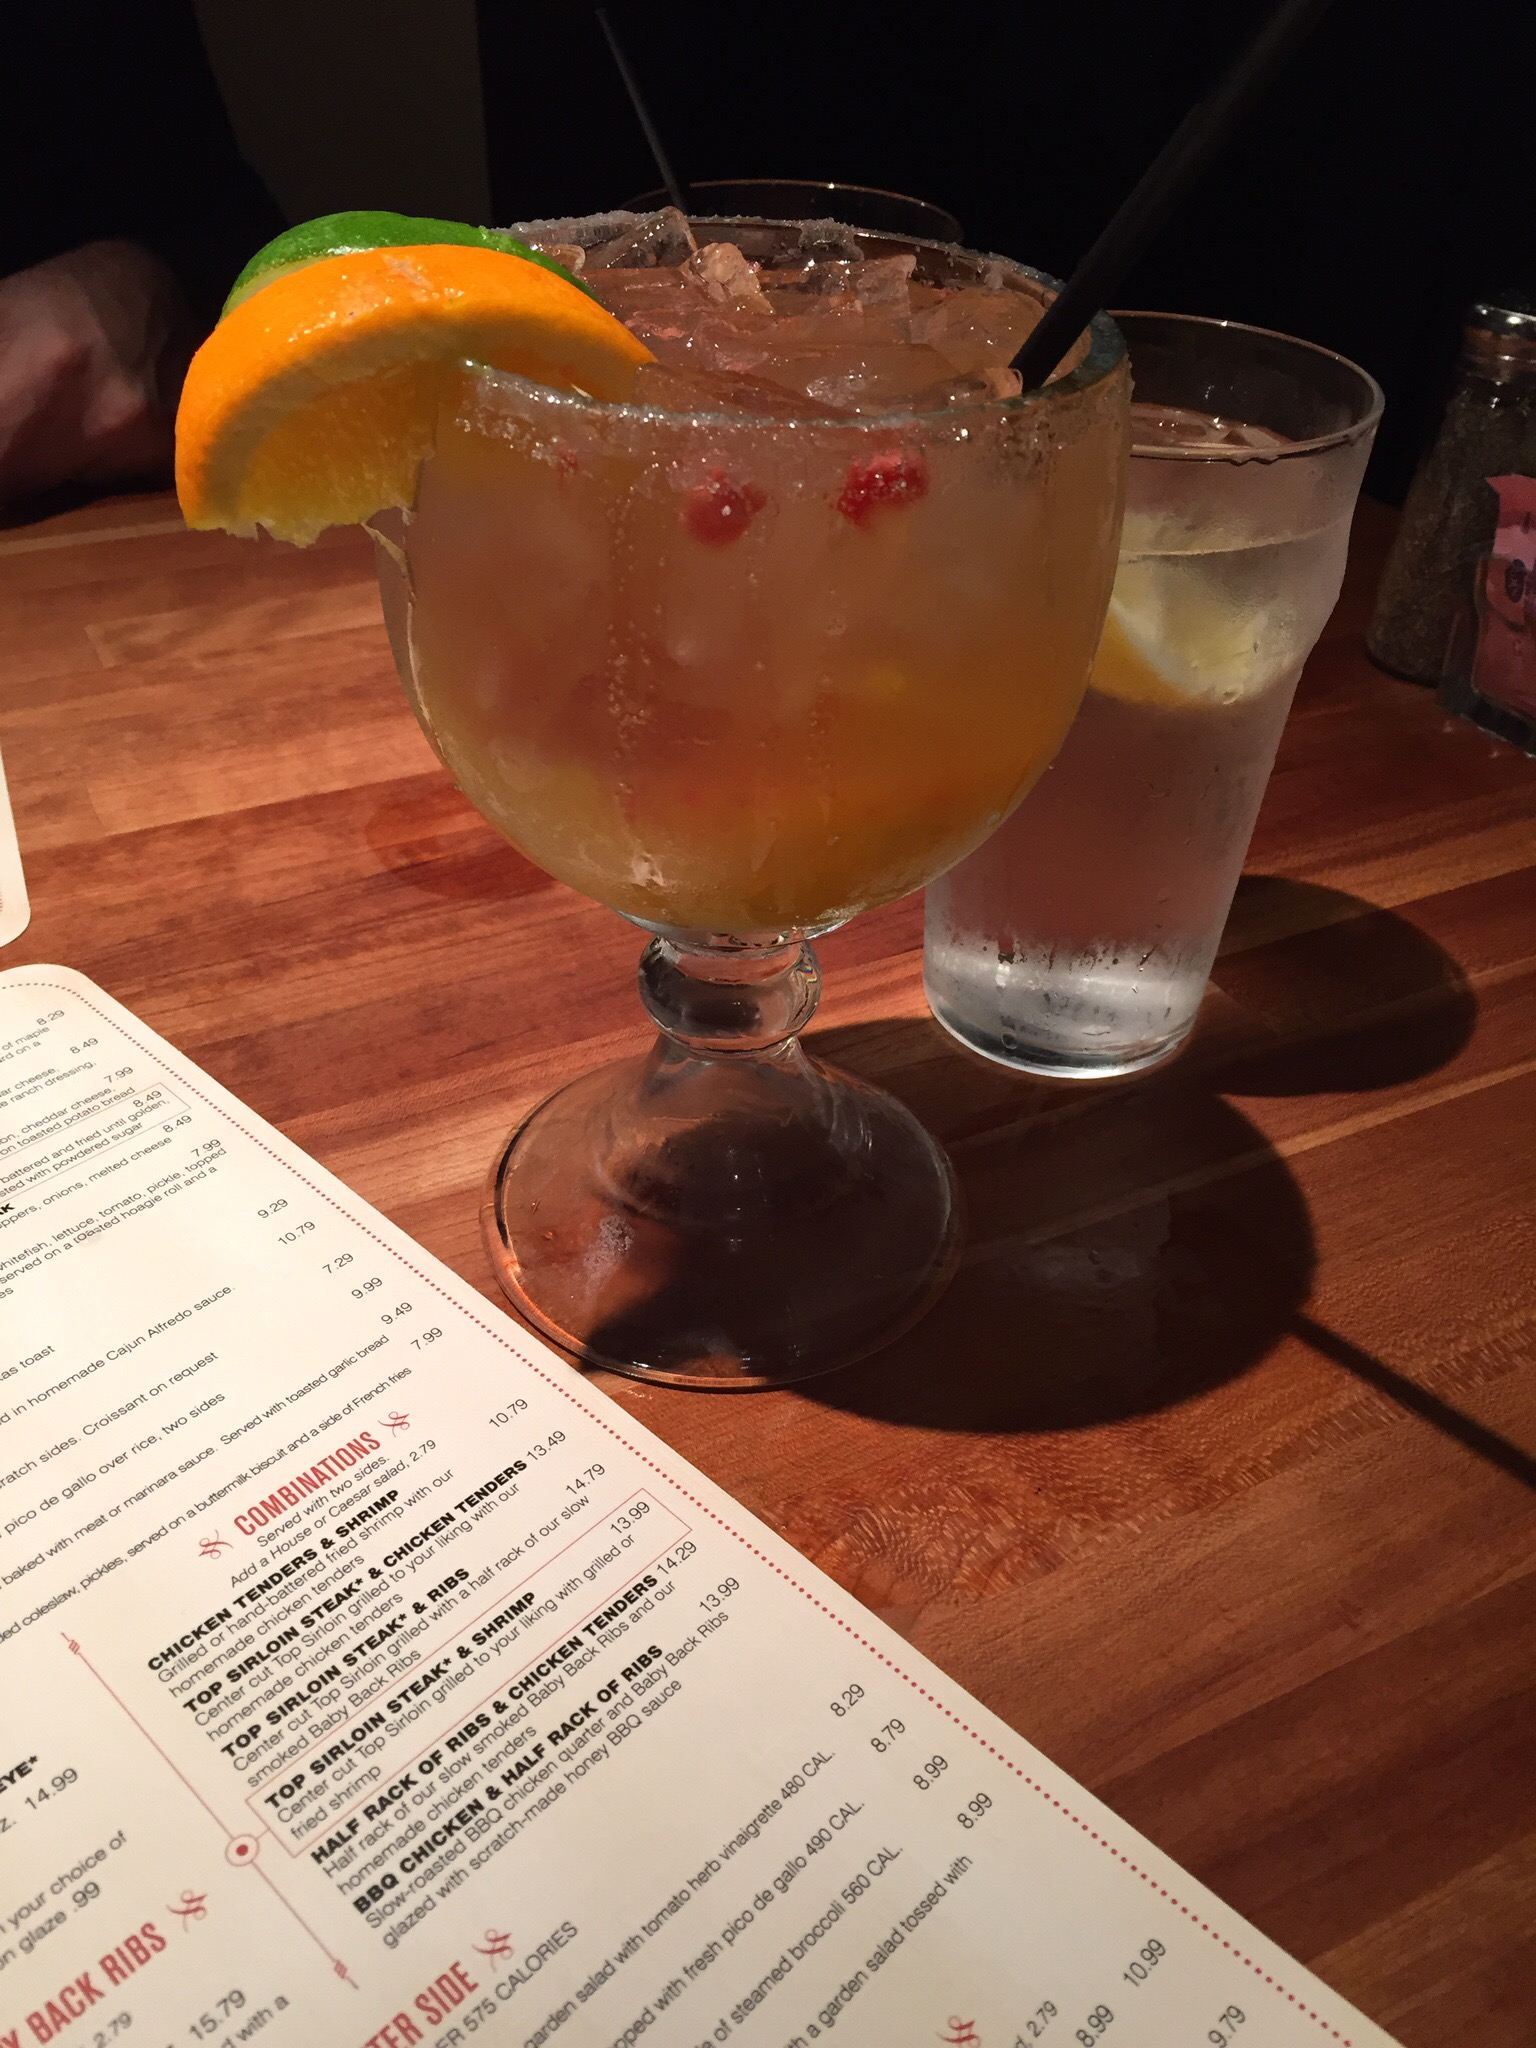 Cheddar s Scratch Kitchen Restaurant Review – Constantly Curating